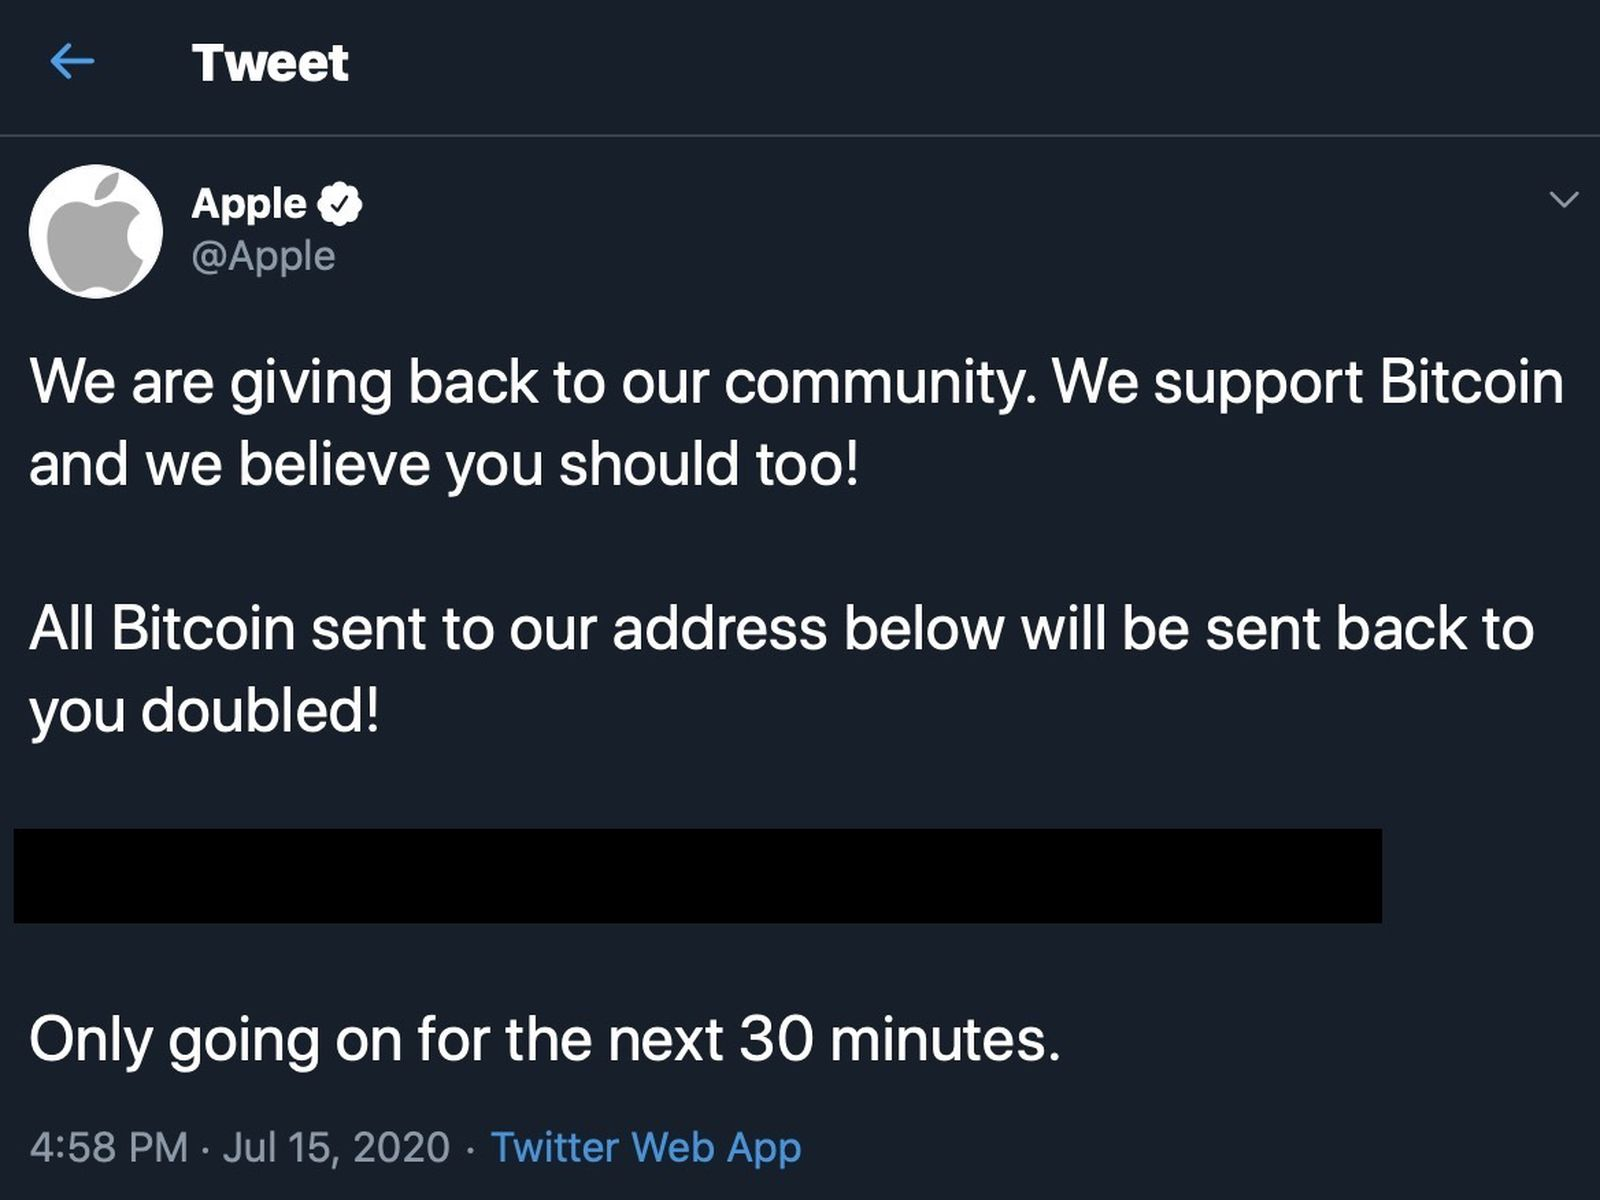 Apple's Twitter Account Hacked by Bitcoin Scammers - MacRumors